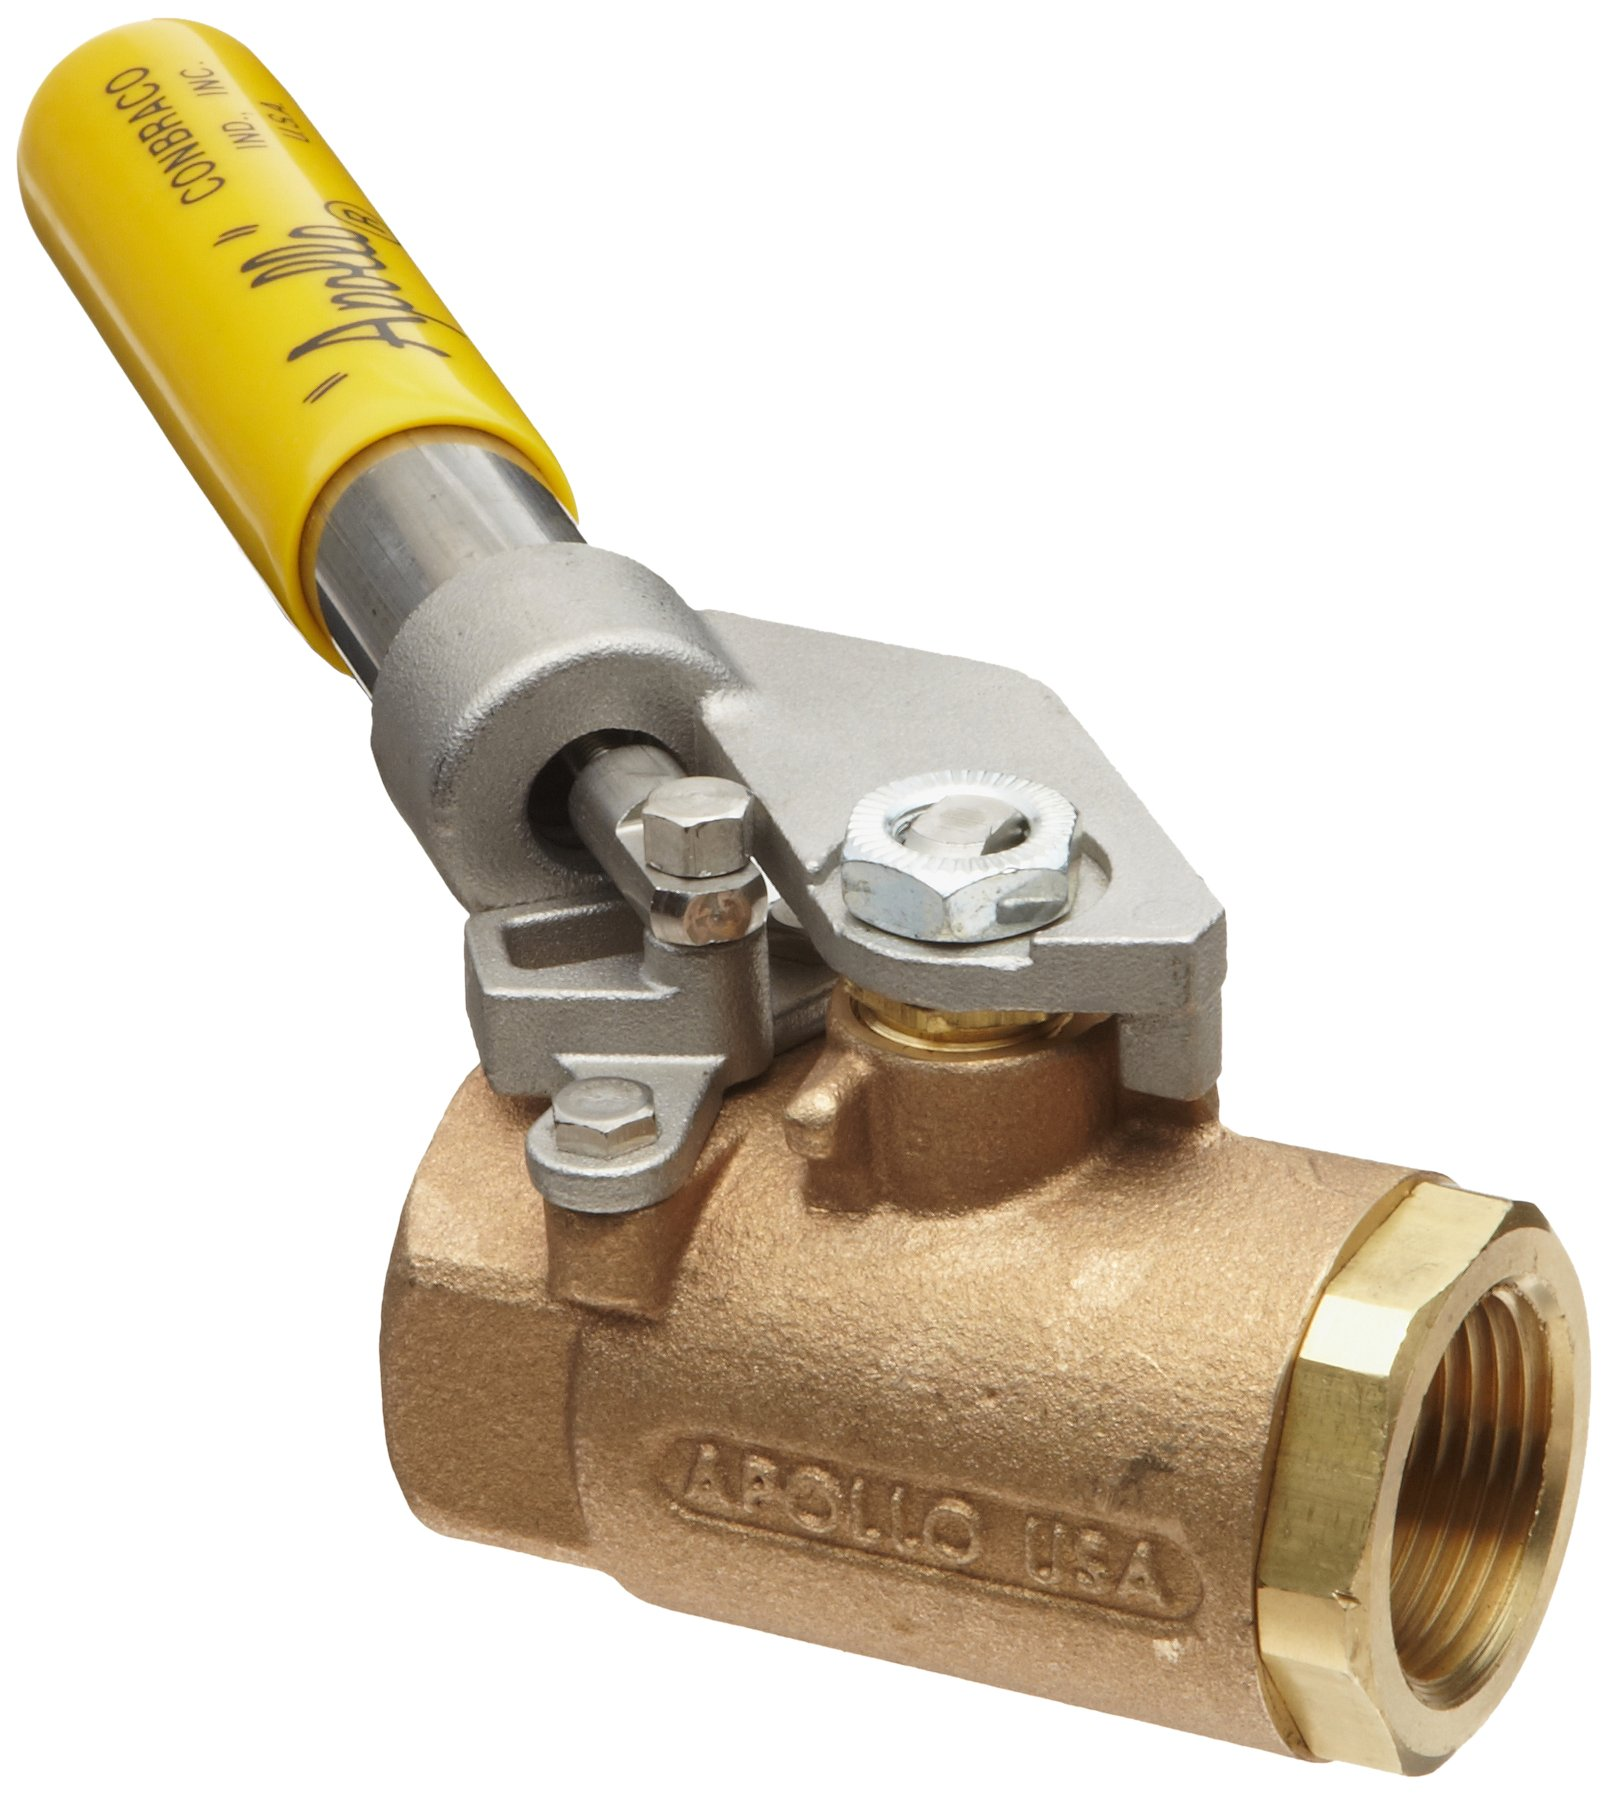 Apollo 71-500 Series Bronze Ball Valve, Two Piece, Inline, Spring-Close Lever, 3/4'' NPT Female by Apollo Valve (Image #1)